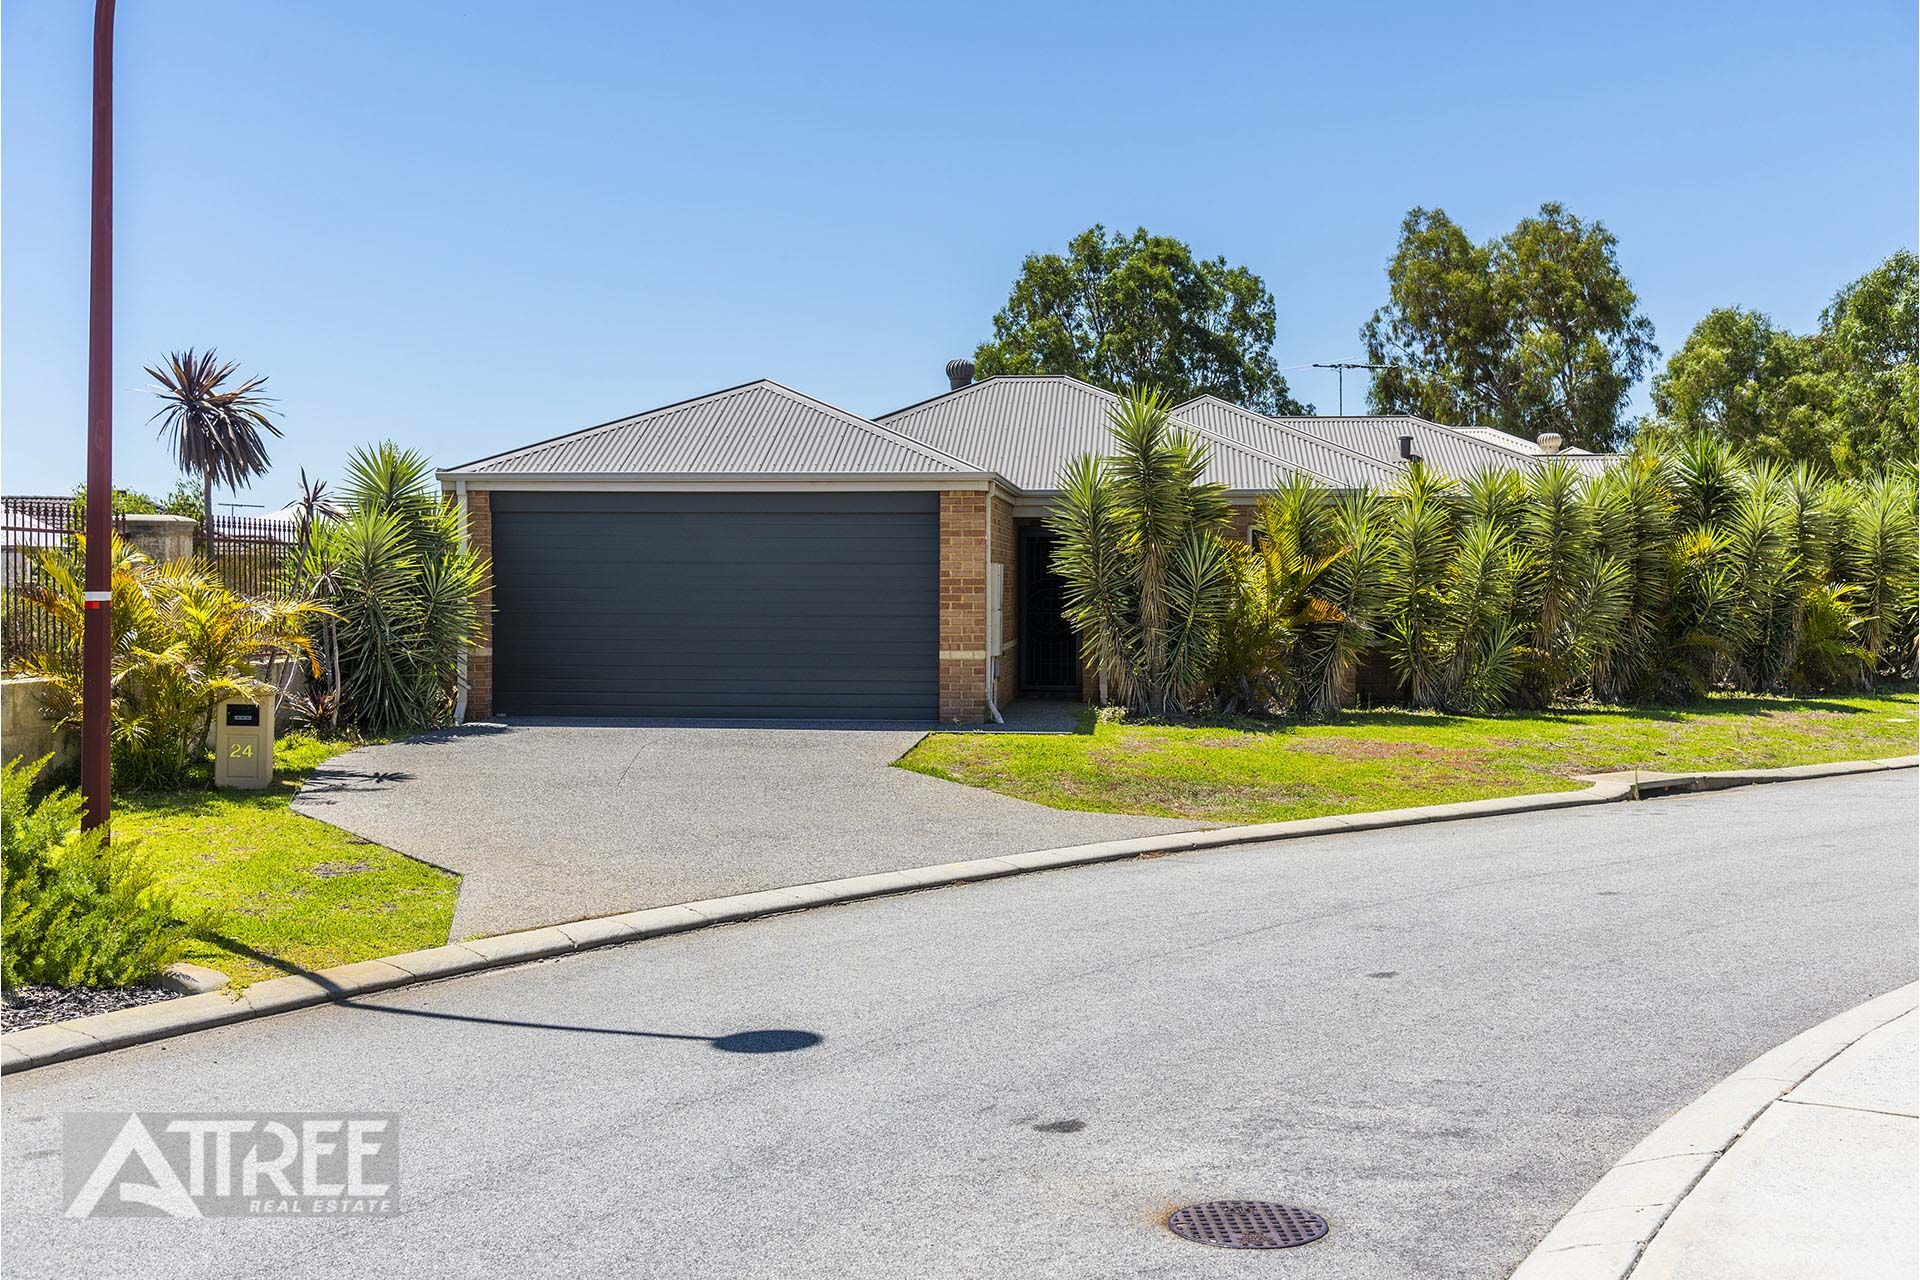 Property for sale in CANNING VALE, 24 Hourn Way : Attree Real Estate